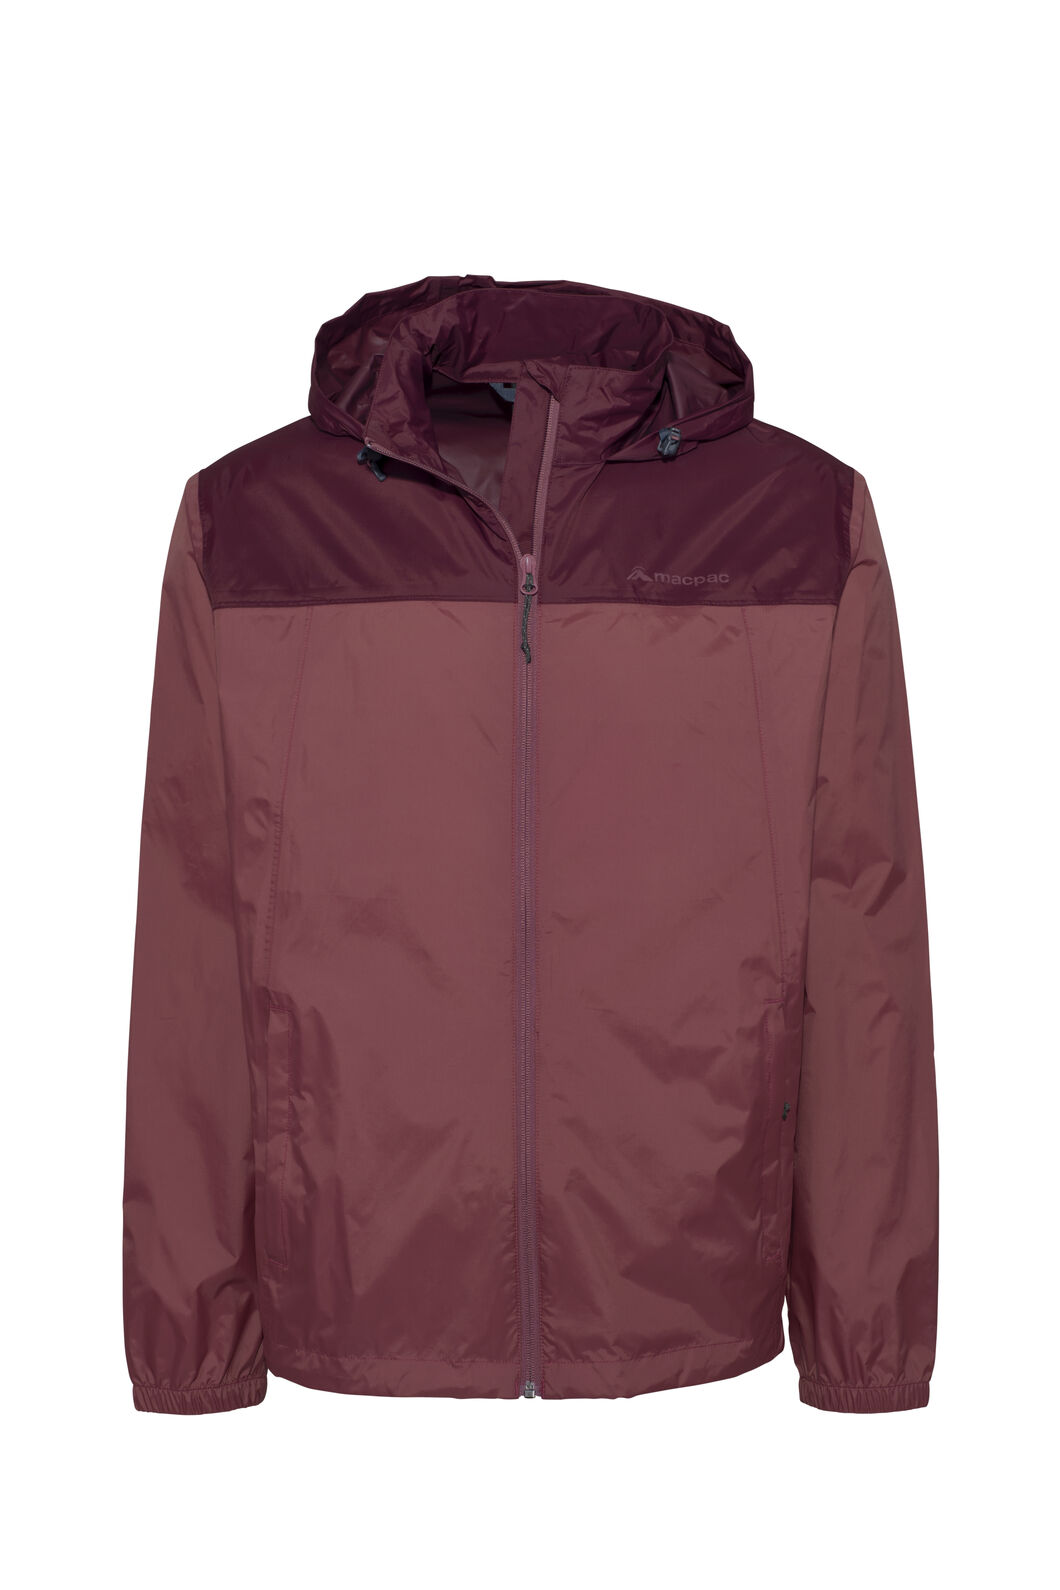 Macpac Pack-It-Jacket — Unisex, Vineyard Wine/Rose Brown, hi-res